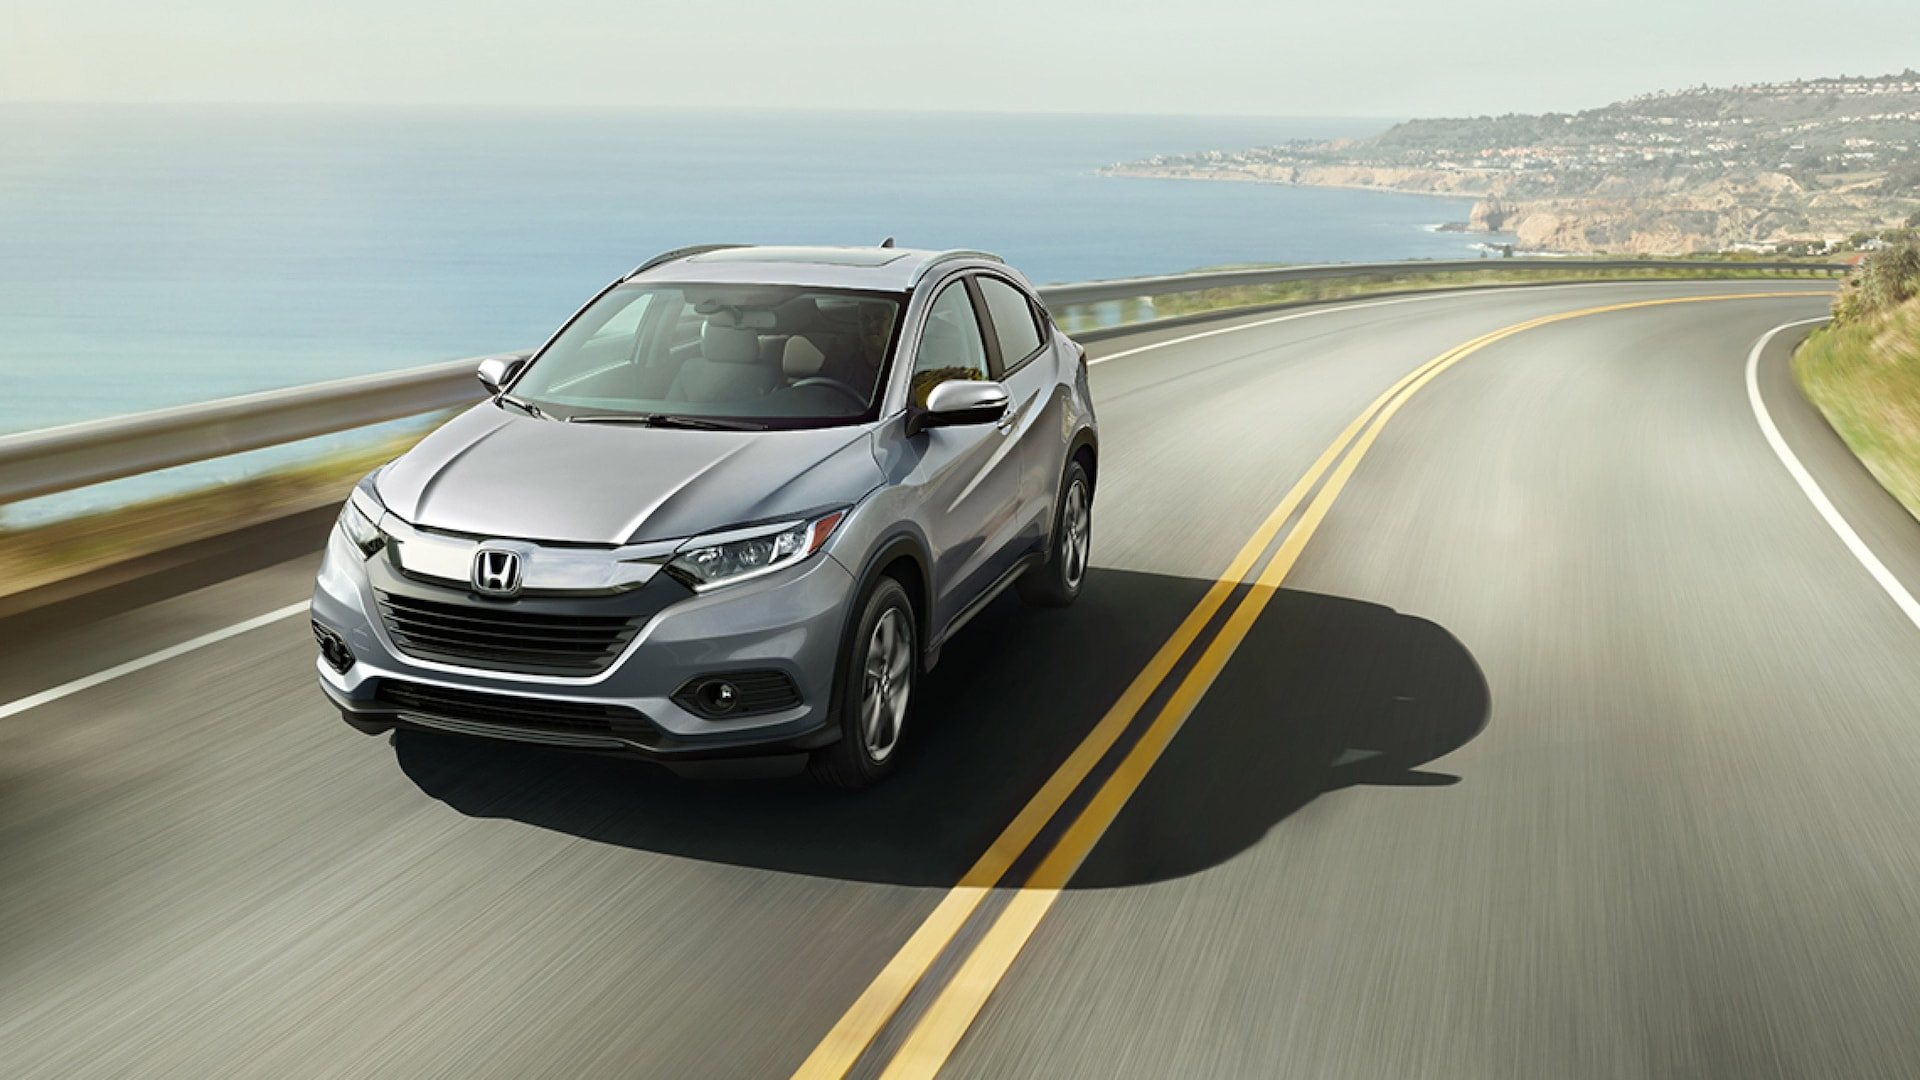 Front 3/4 driver's side view of the 2019 Honda HR-V EX-L in Lunar Silver Metallic driving on a highway overlooking an ocean.